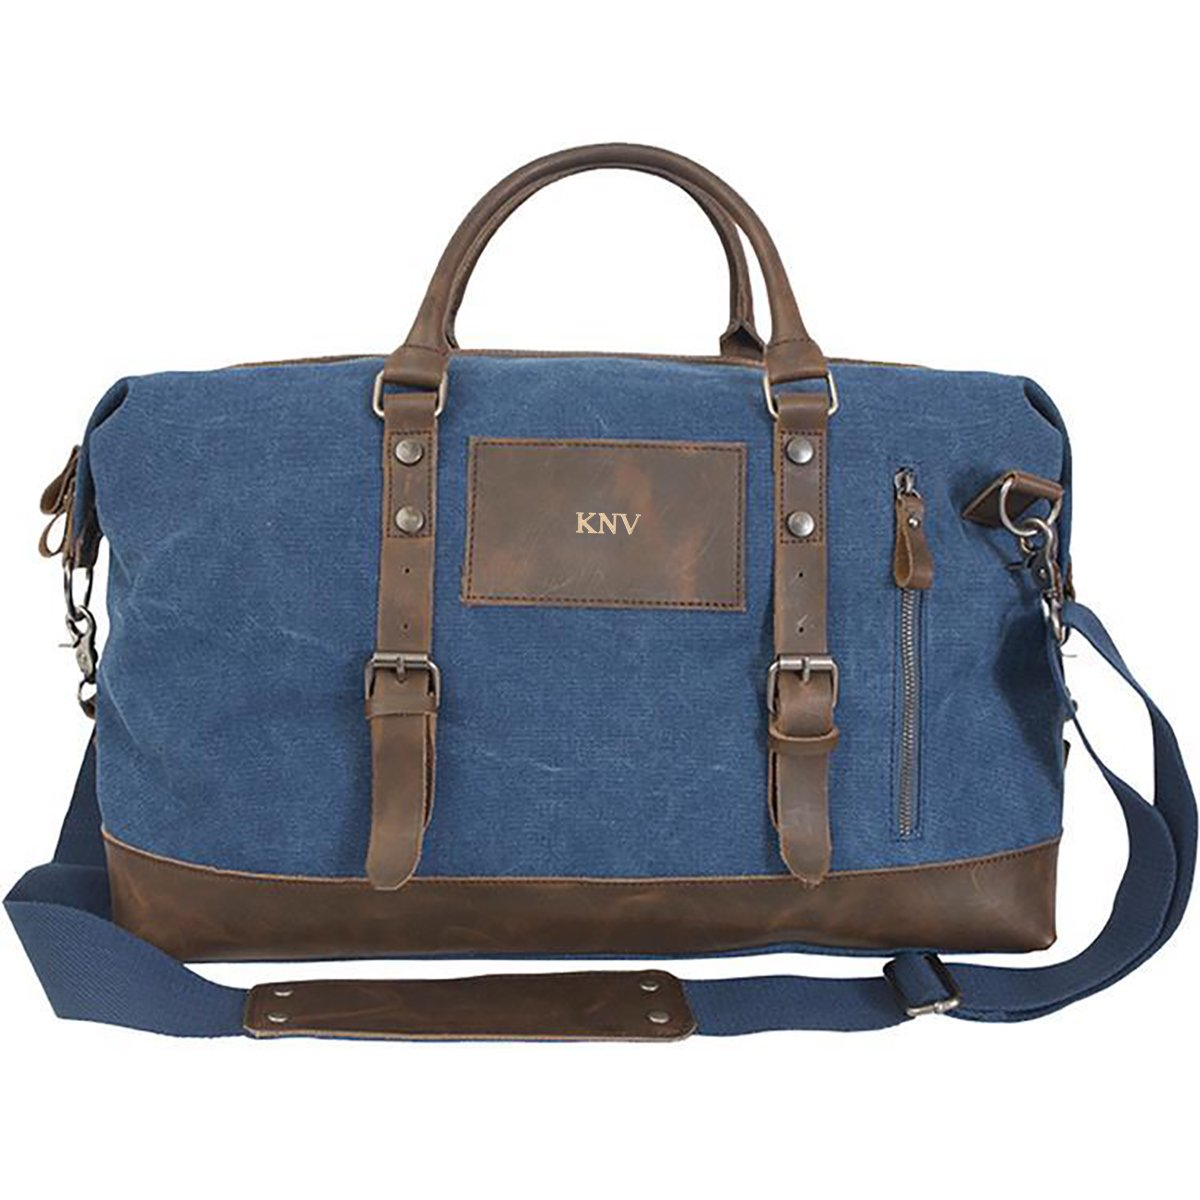 A Gift Personalized Personalized Blue Canvas and Leather Weekender Duffel Bag - Gold